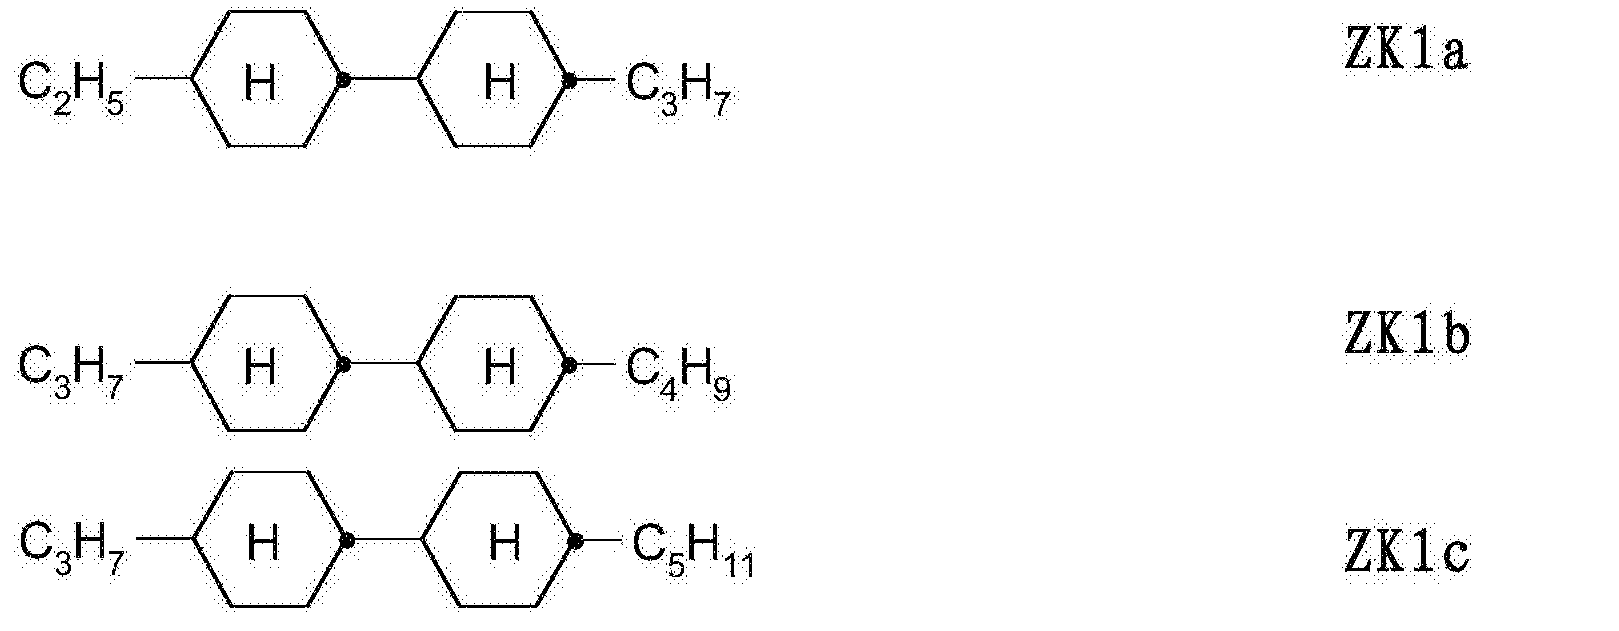 Cn106947497a Polymerizable Compounds And The Use Thereof In Liquid Unit 2 53 B2e Electronic Commerce Figure Cn106947497ad01112